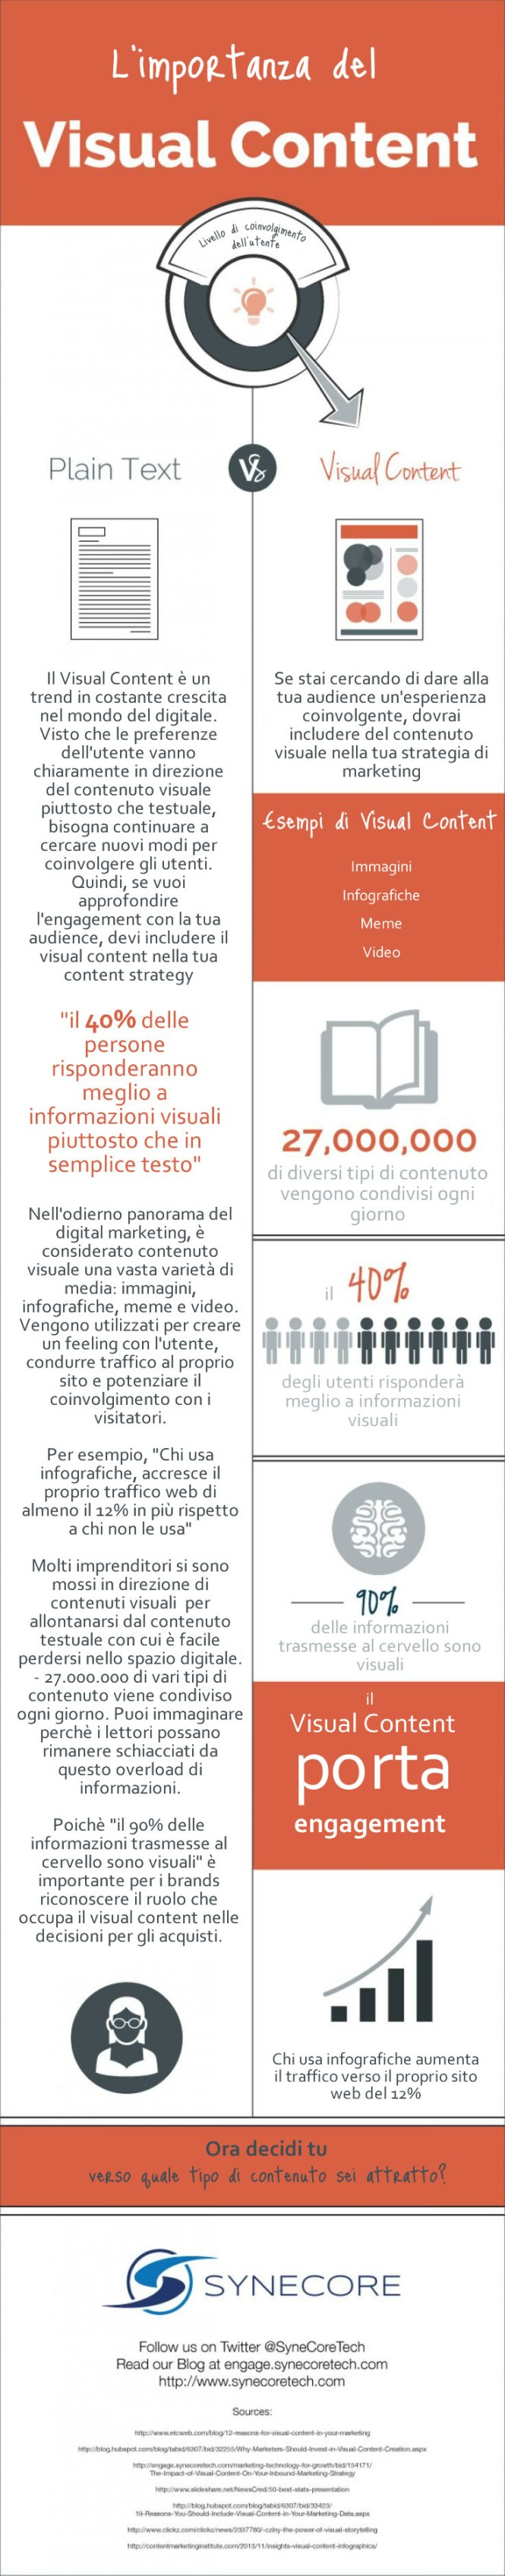 L'importanza del Visual Content